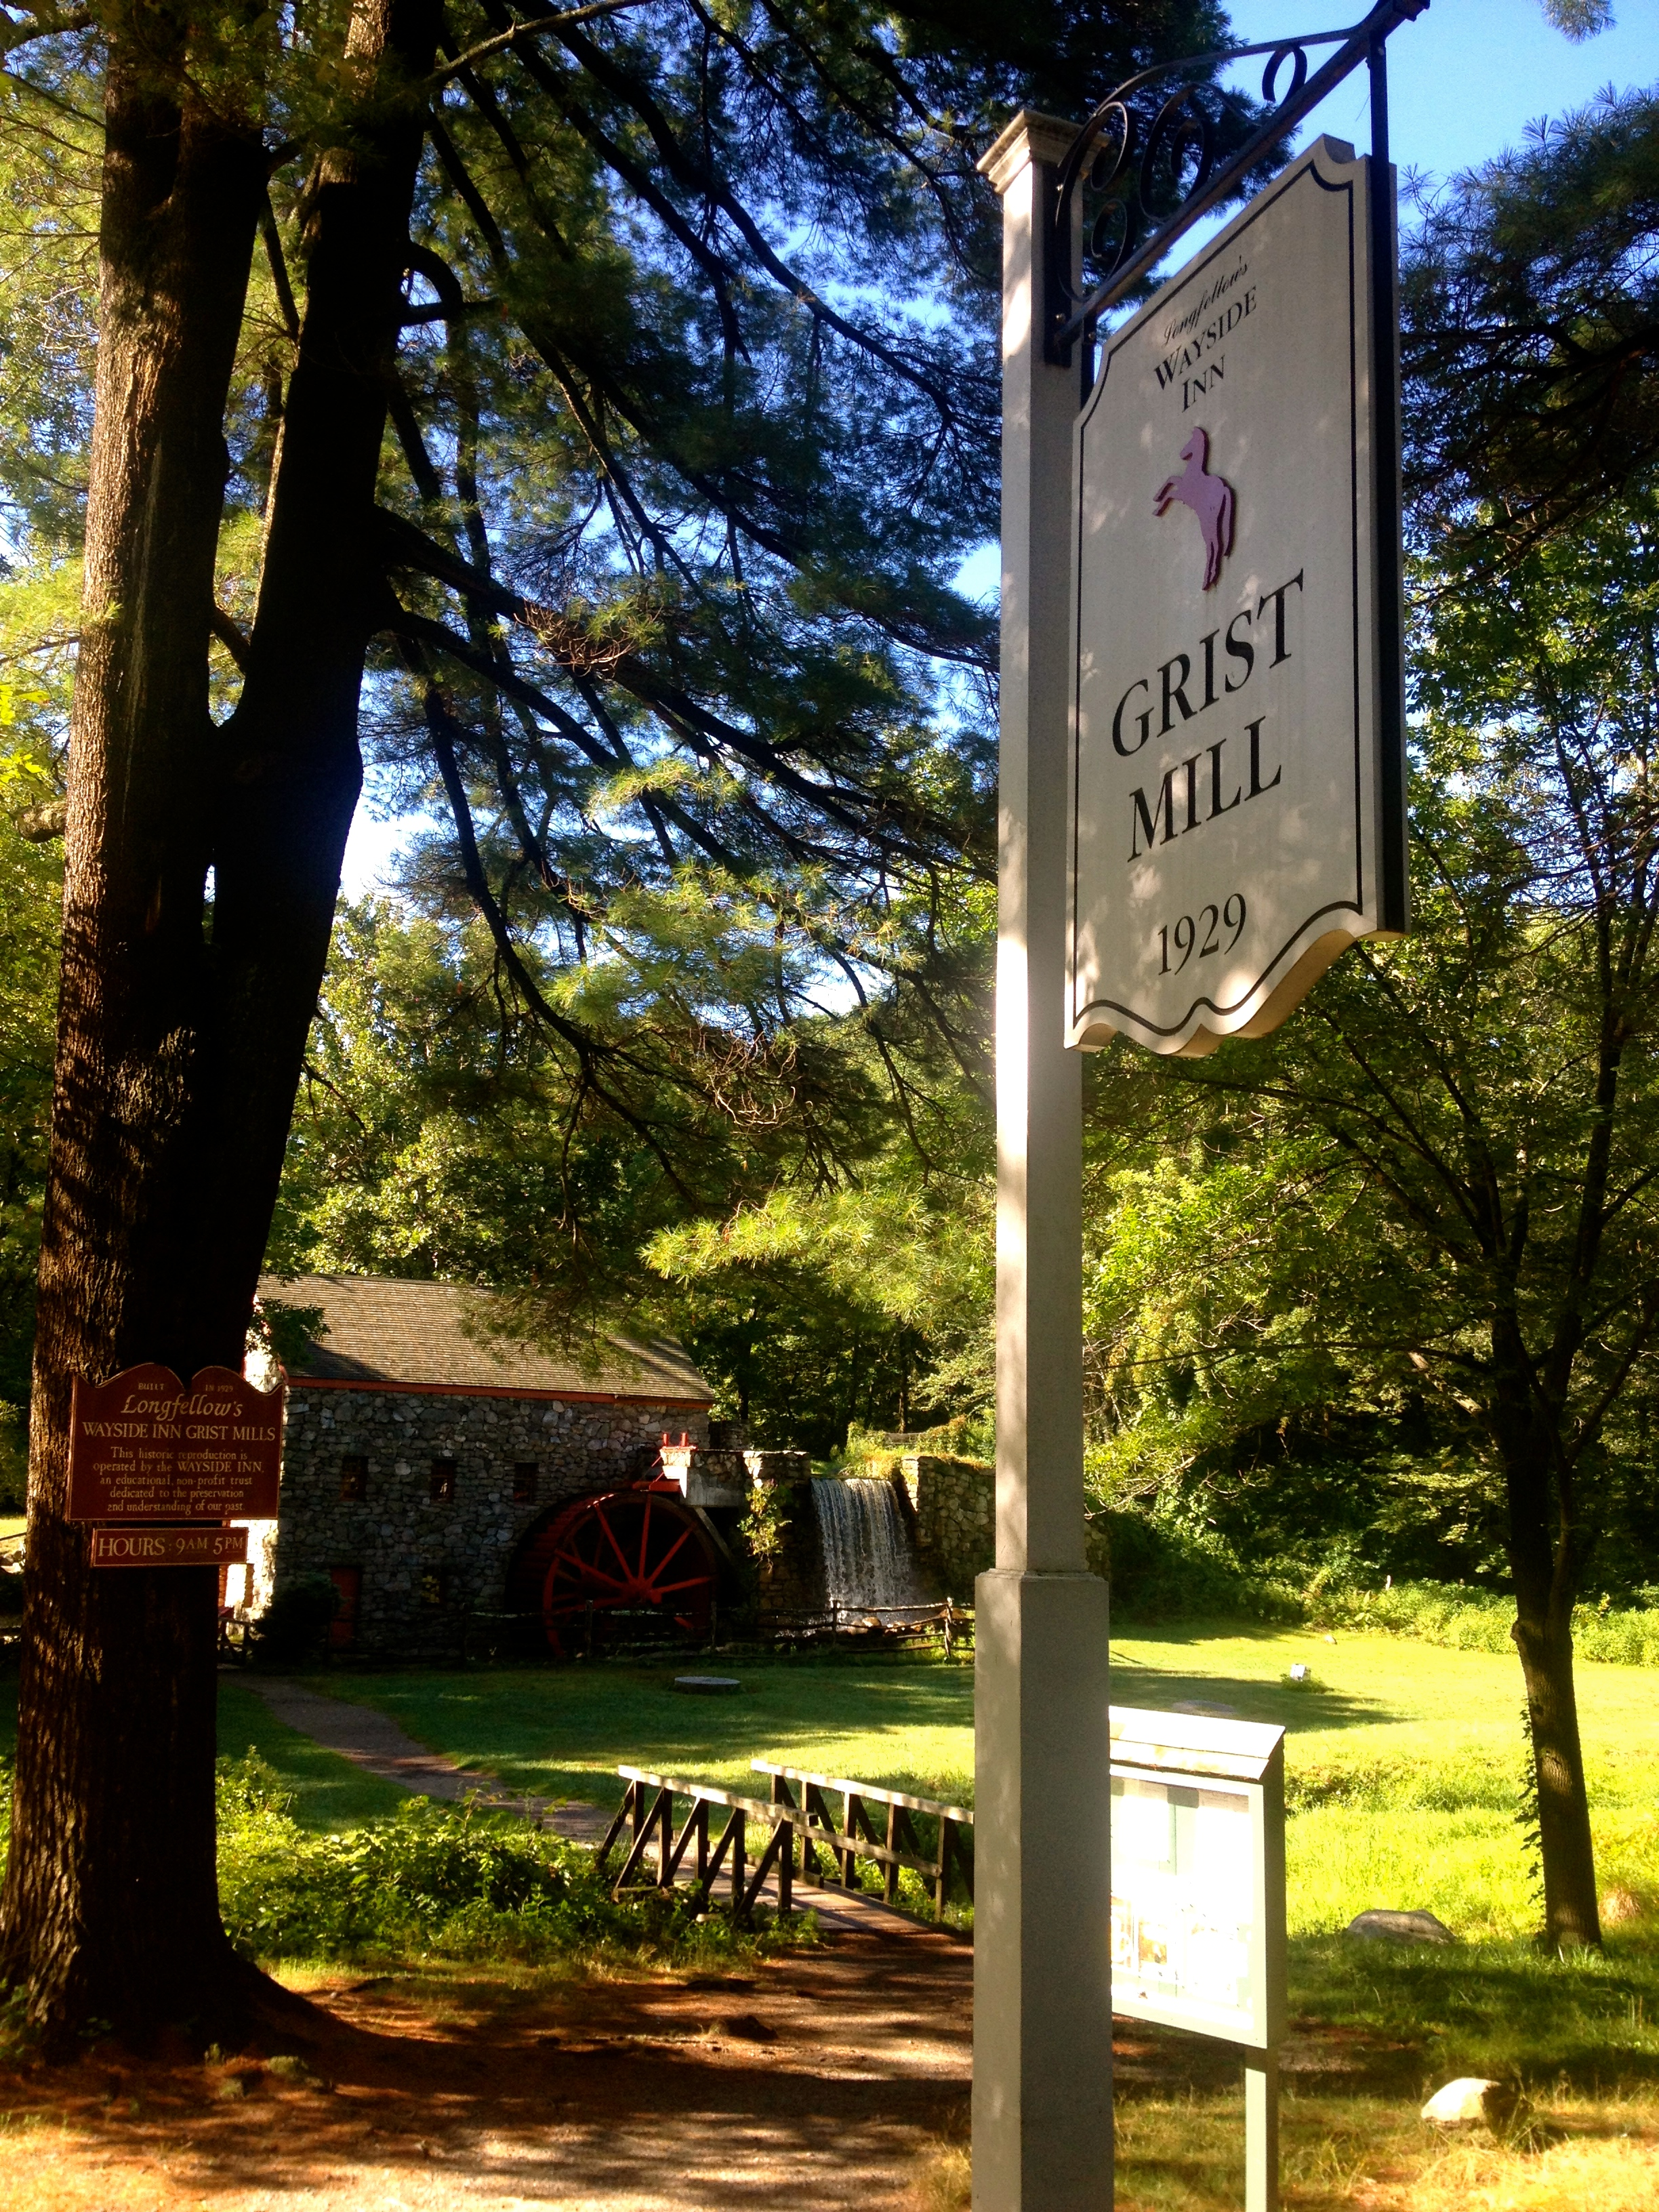 A visit to The Wayside Inn is a must.